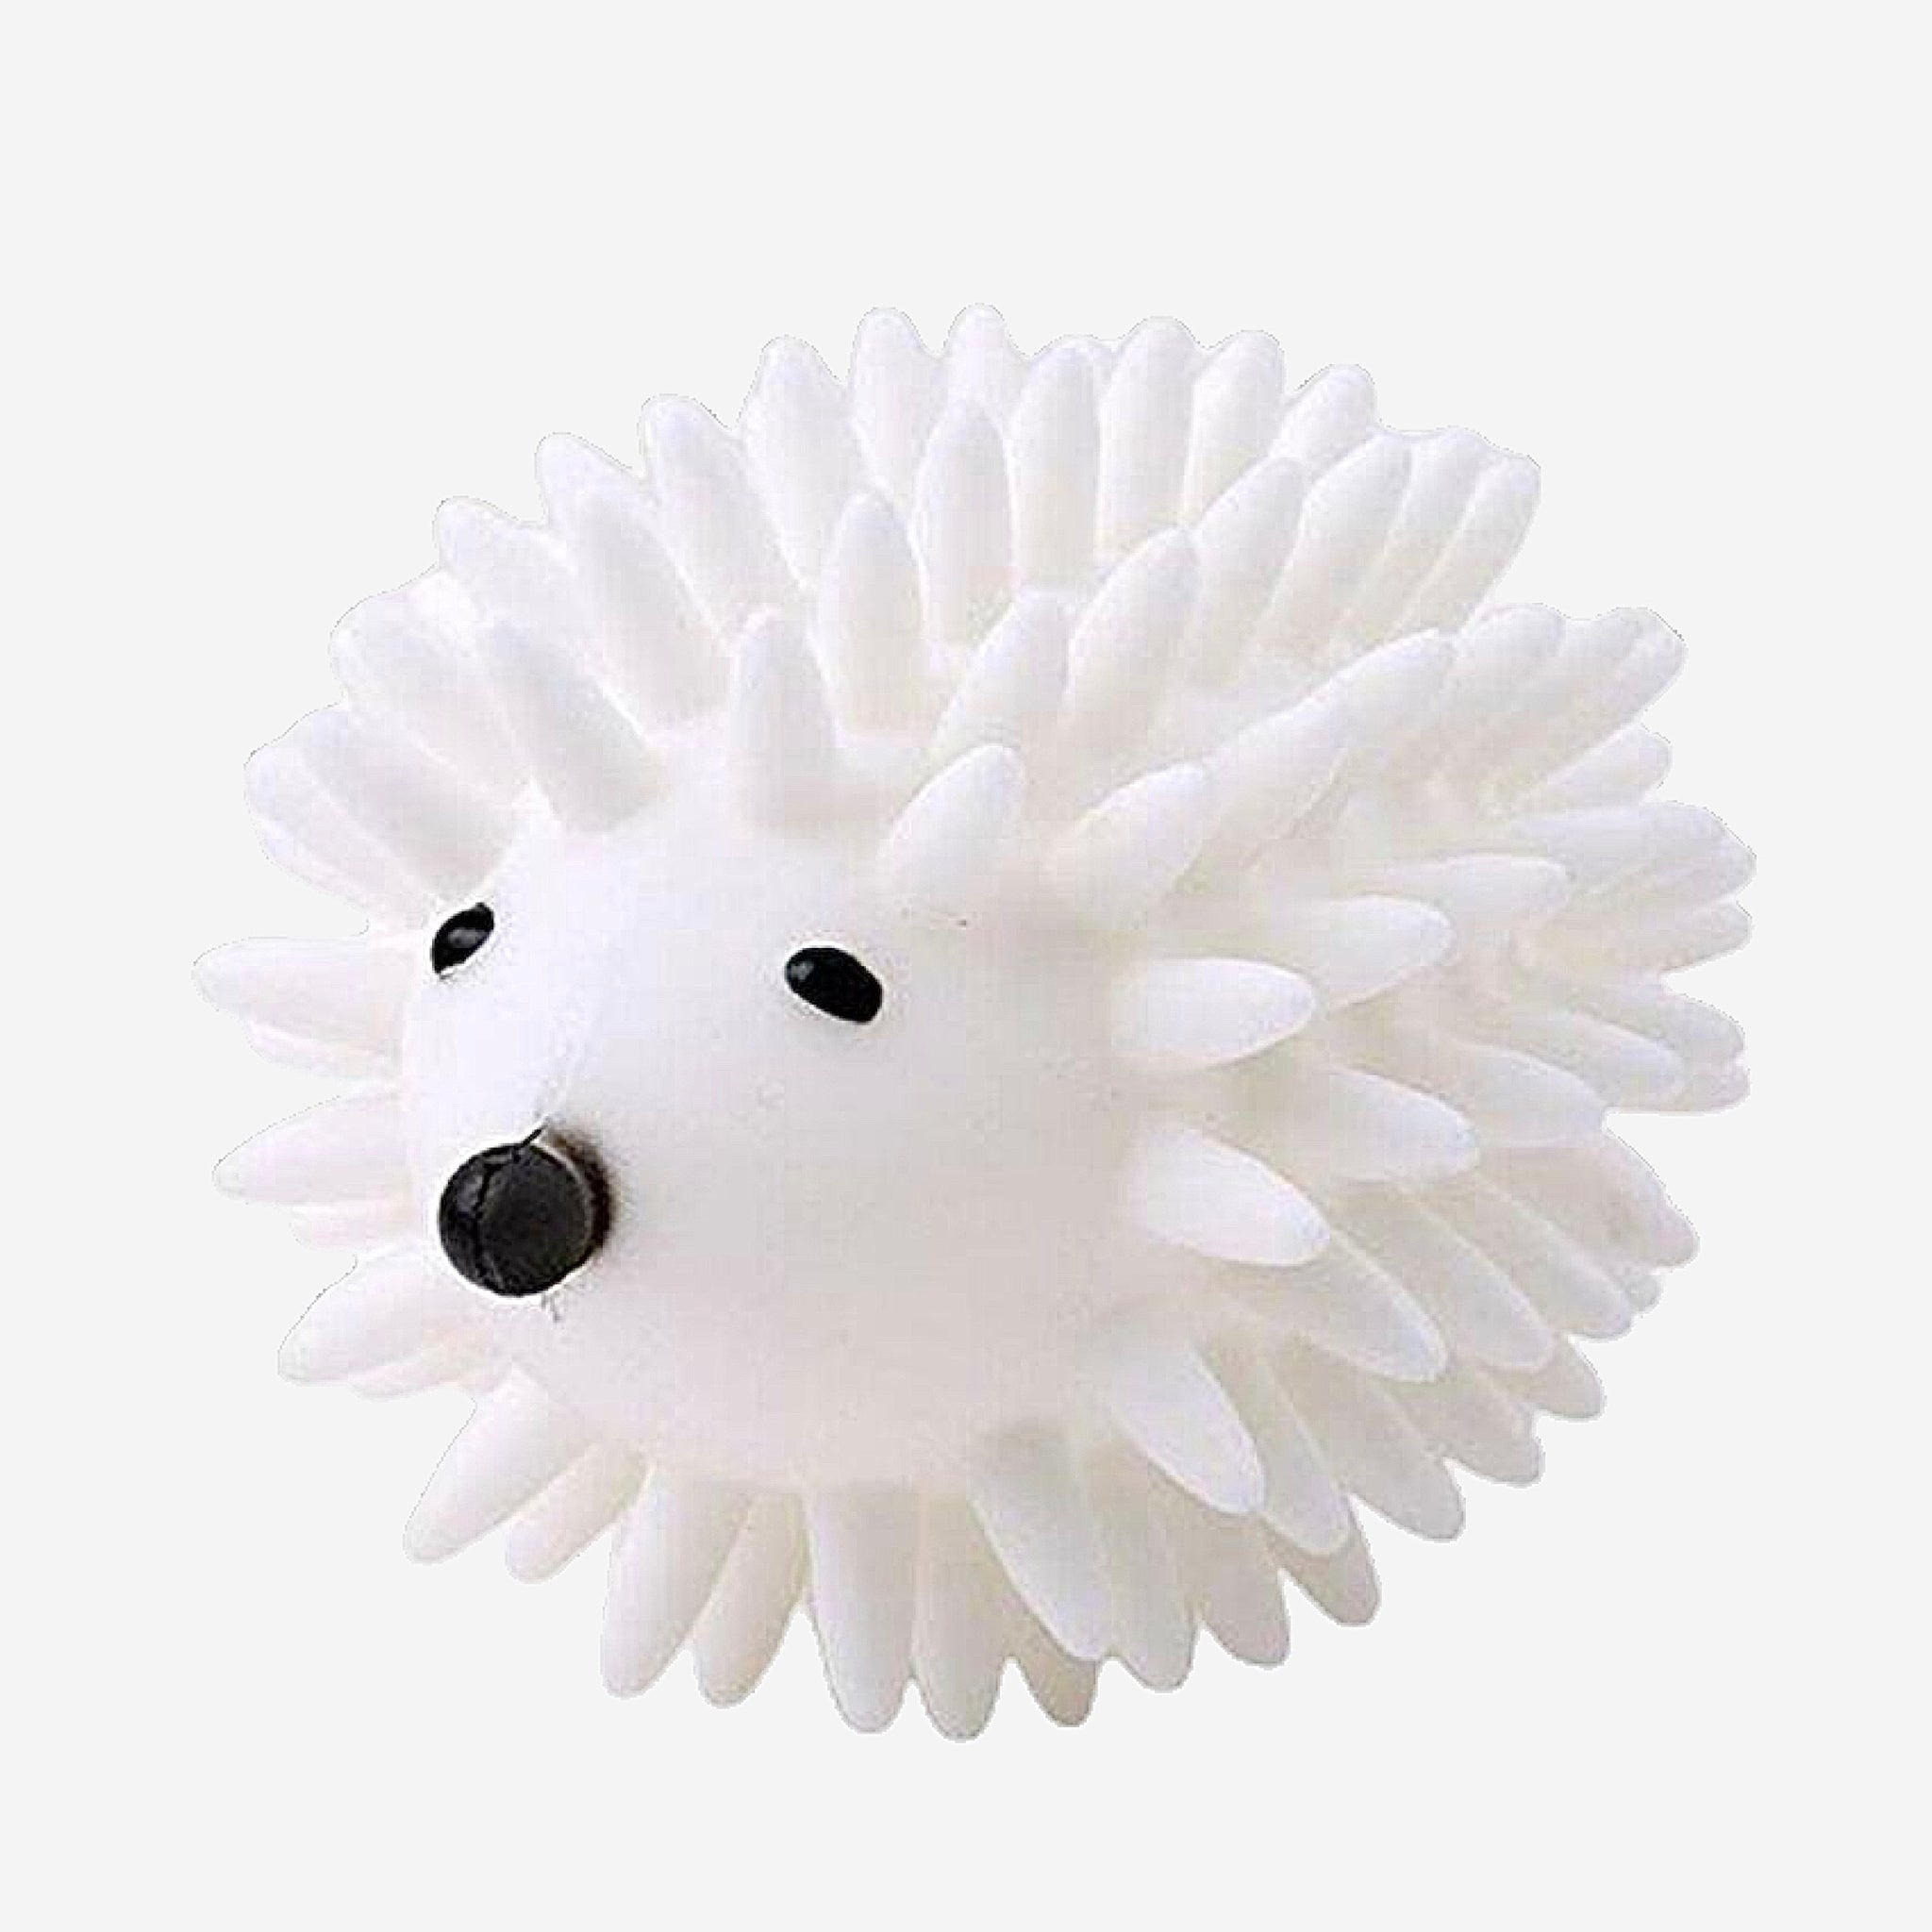 Hedgehog shape Laundry Ball Reusable Clean Washing Dryer clothes wash Drying Balls Accessories Tools Trend